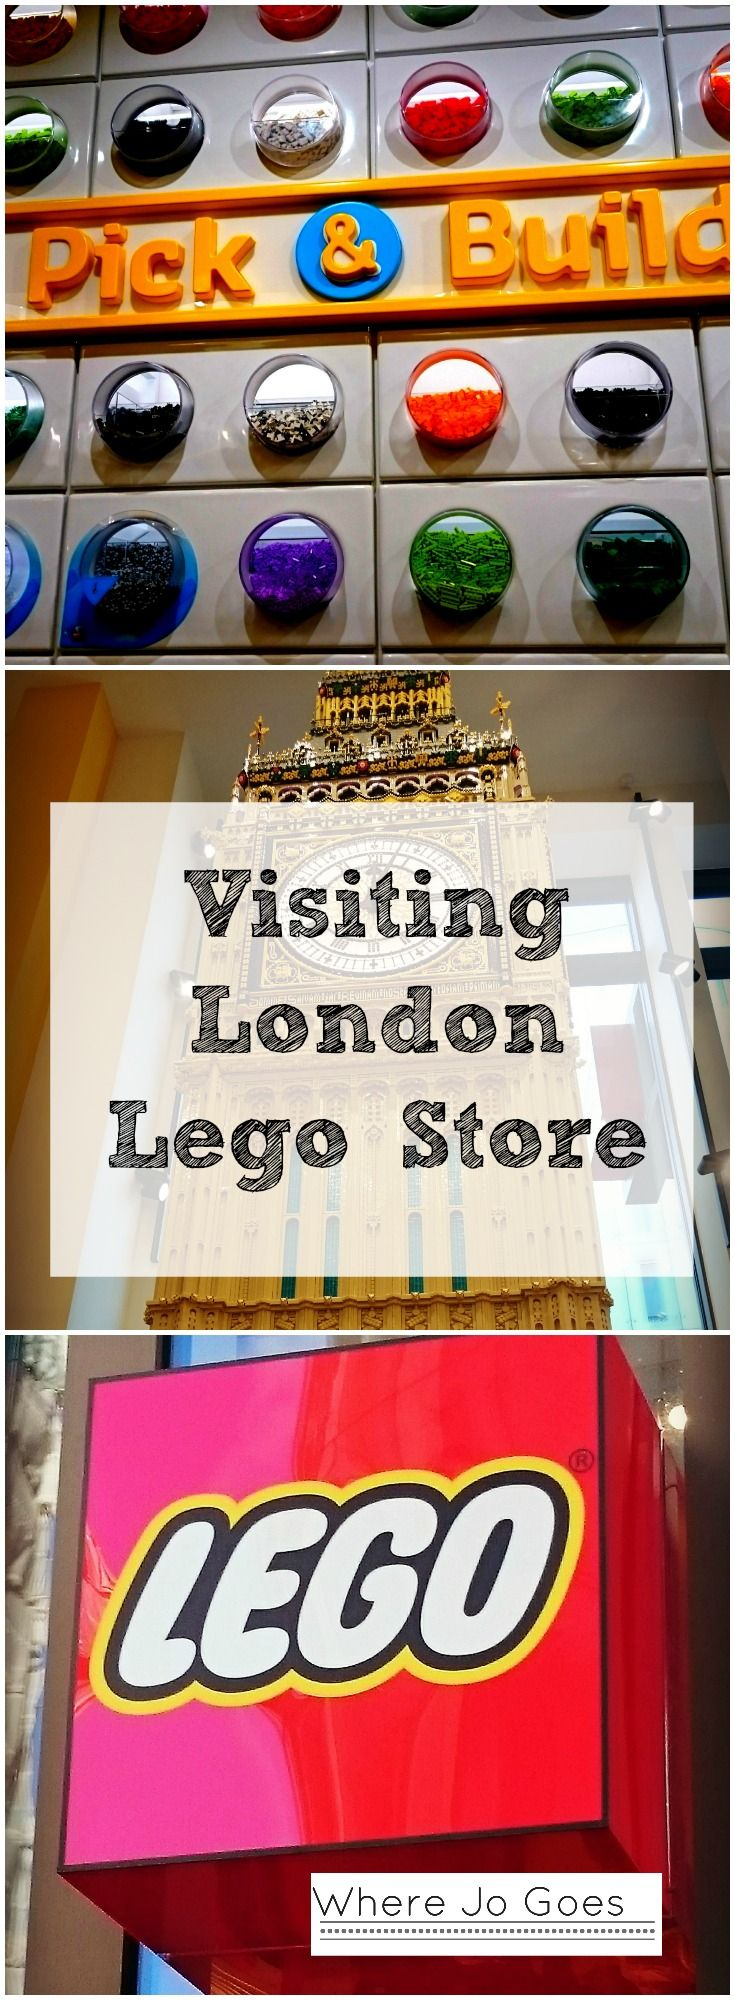 LONDON LEGO STORE: WORLD'S BIGGEST